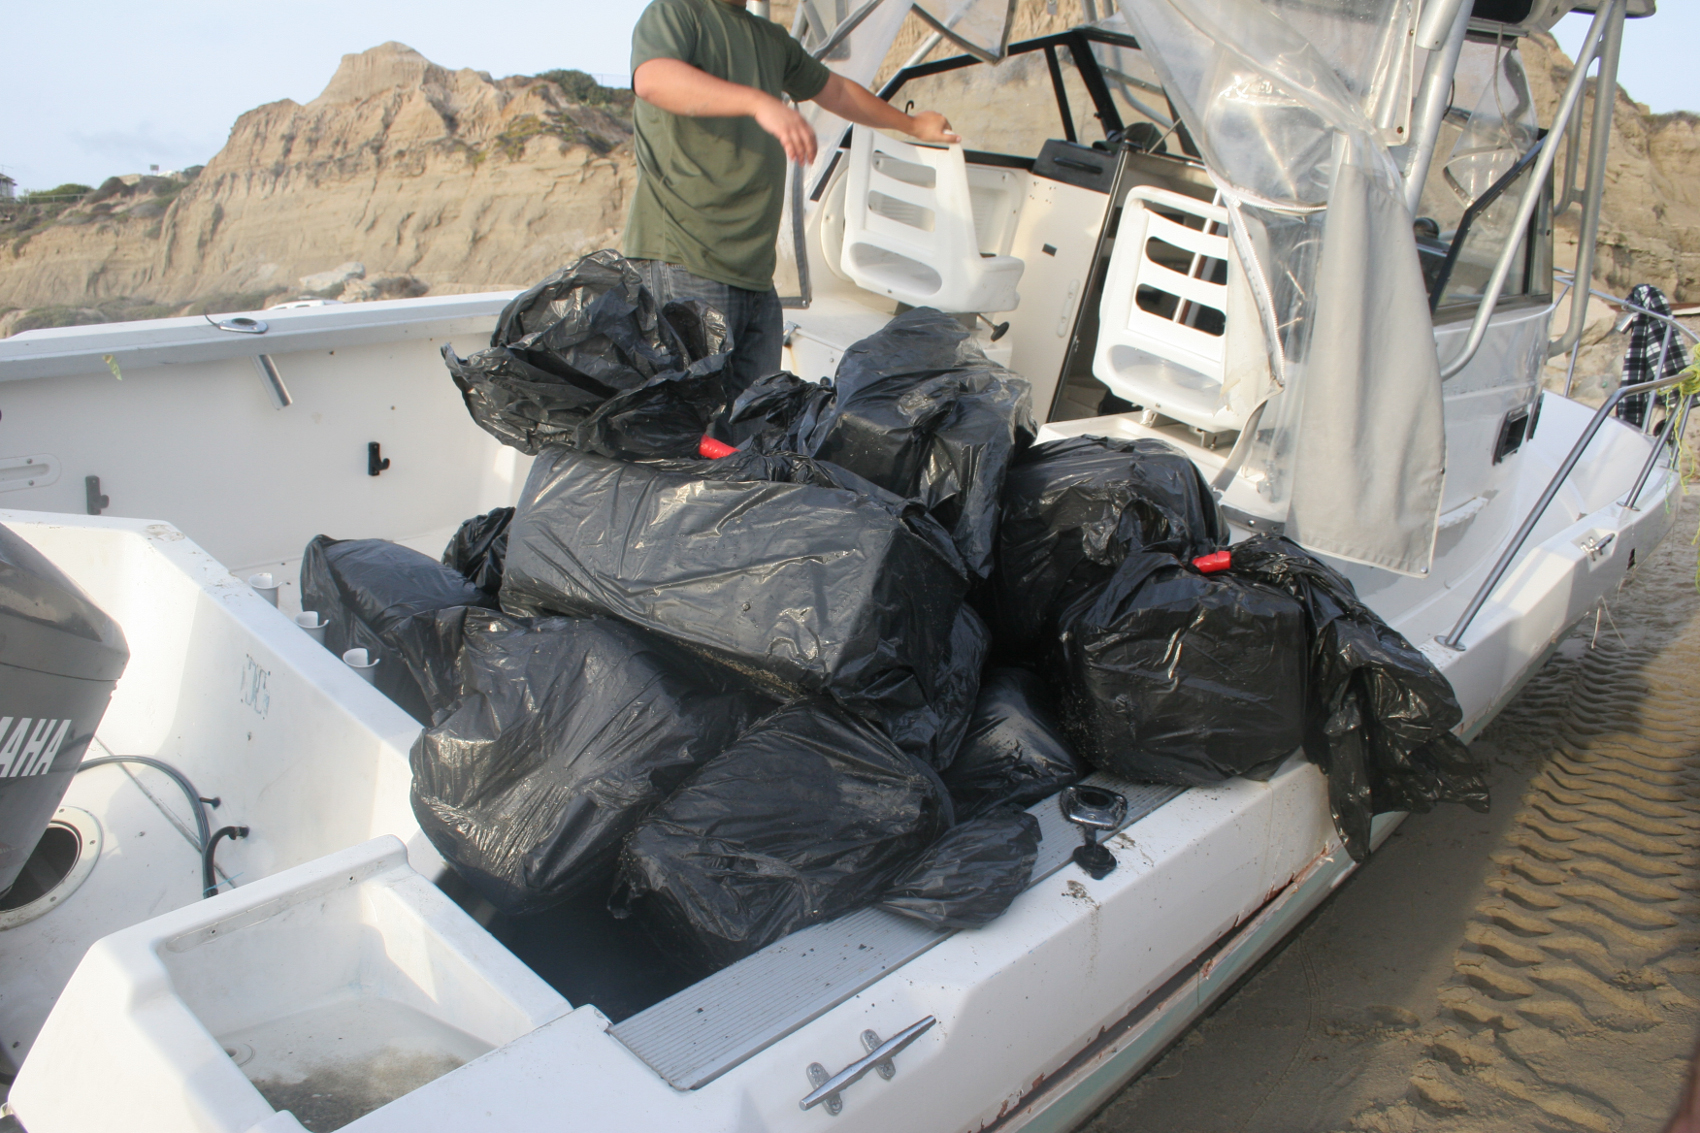 On Monday afternoon, Border Patrol agents seized more than a ton of marijuana from a recreational watercraft. Photo: Courtesy of U.S. Border Patrol